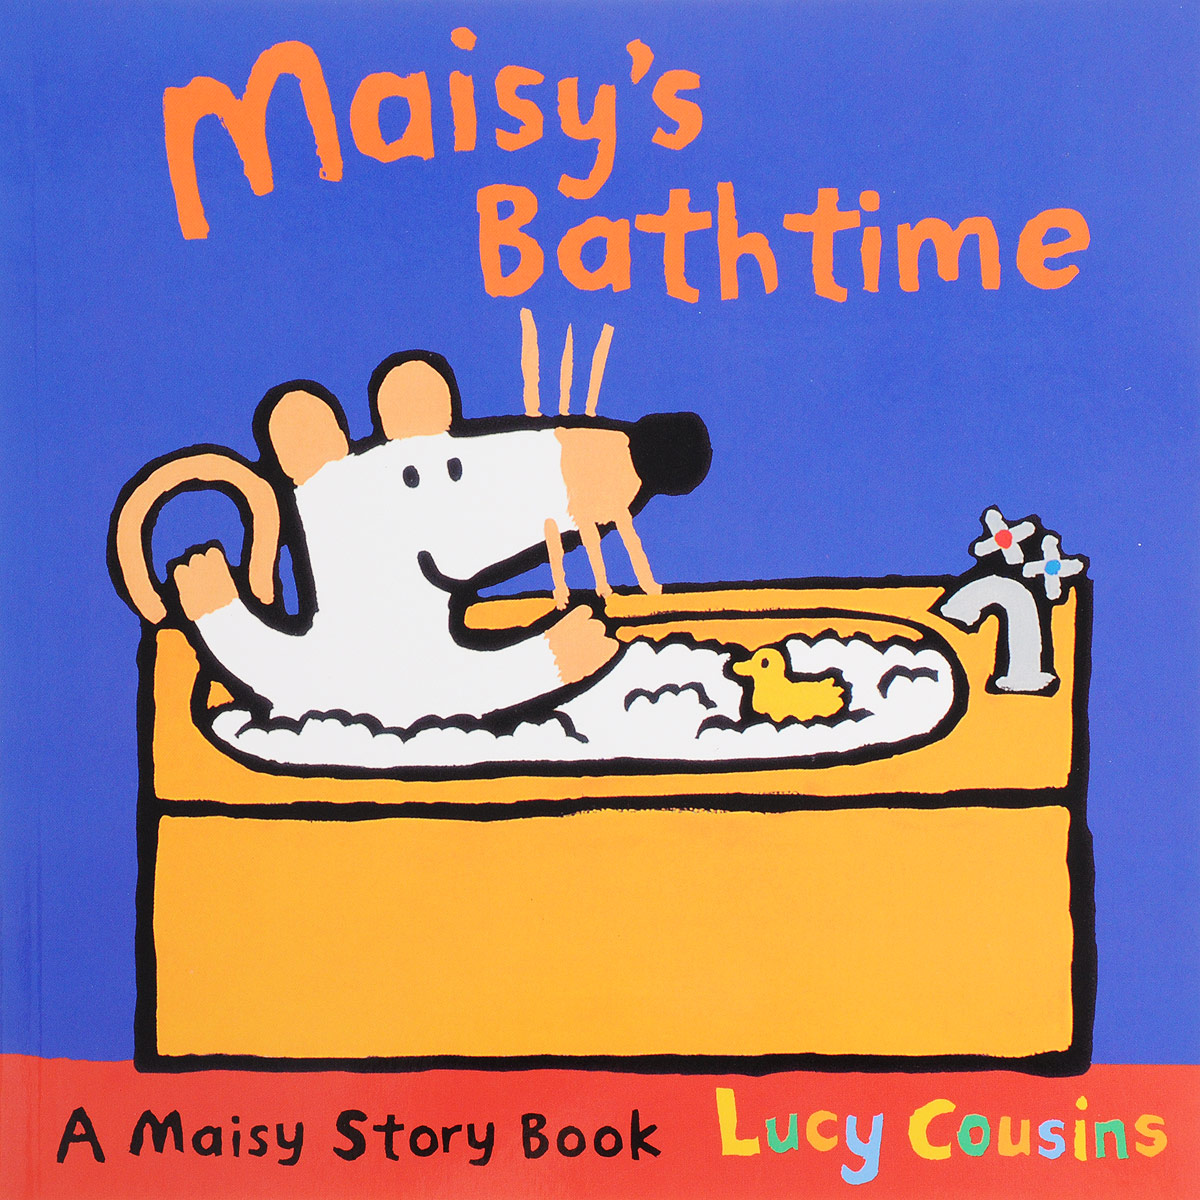 Maisy's Bathtime what she left